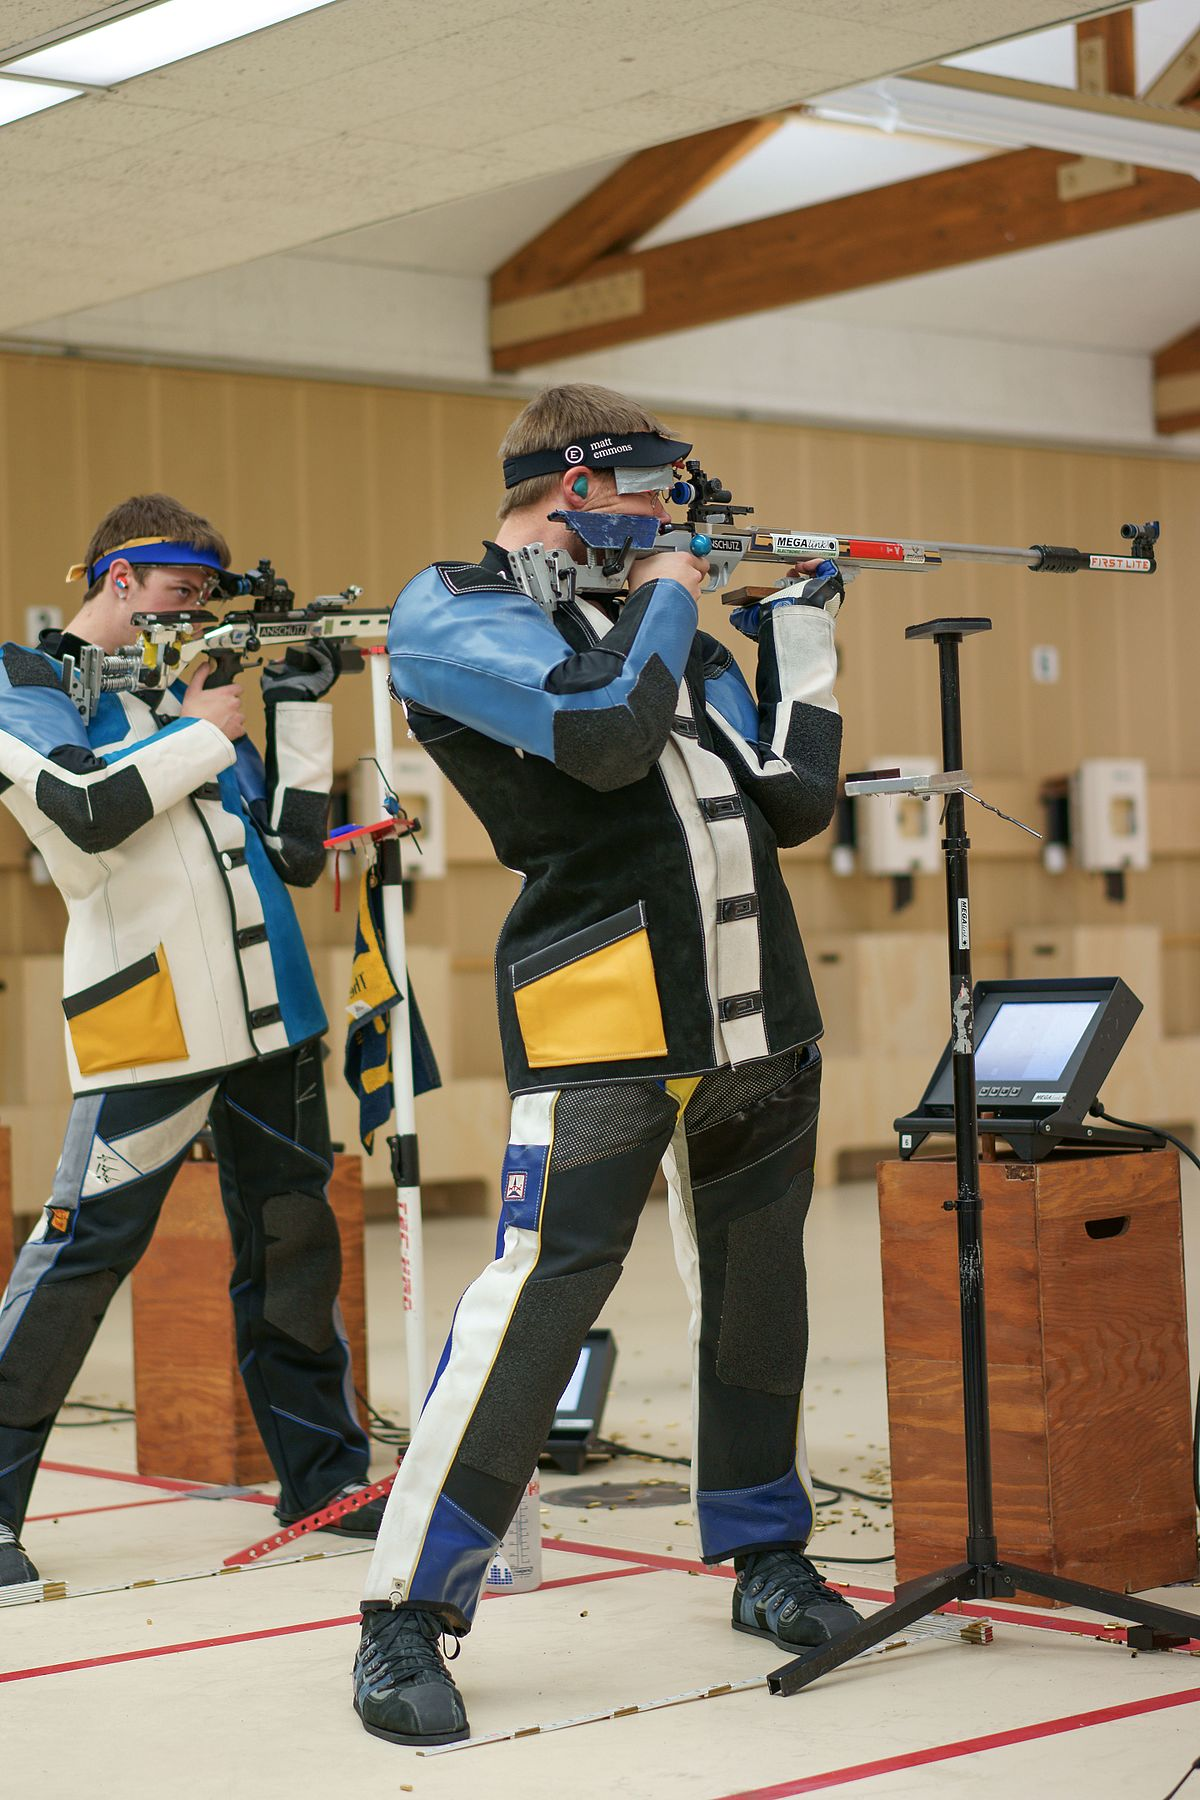 Issf 50 Meter Rifle Three Positions Wikipedia